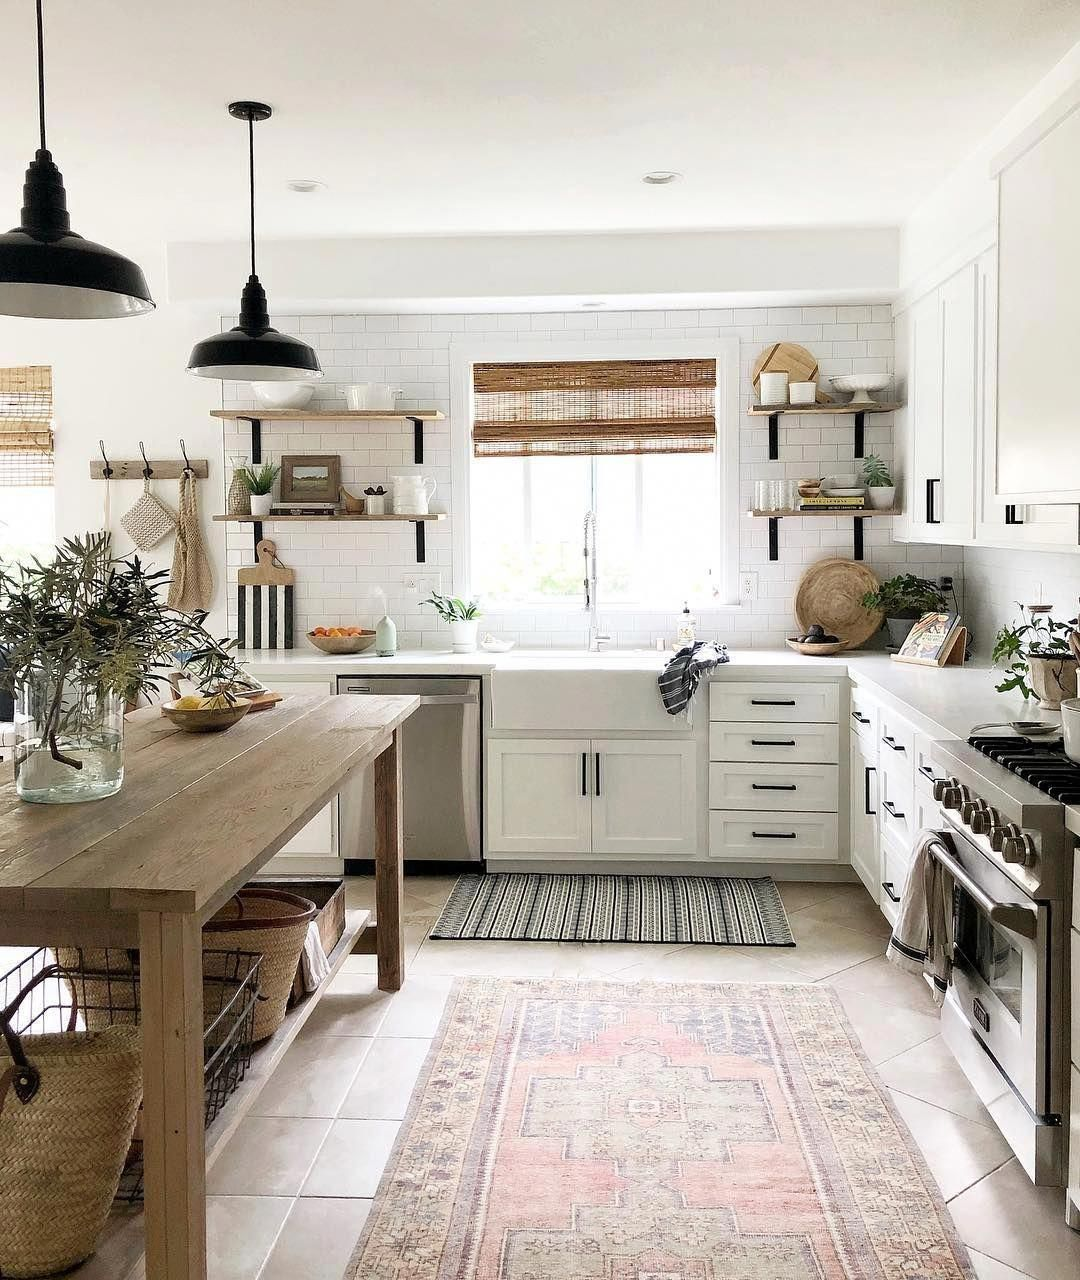 60 Stunning French Country Kitchen Decor Ideas | Country ...